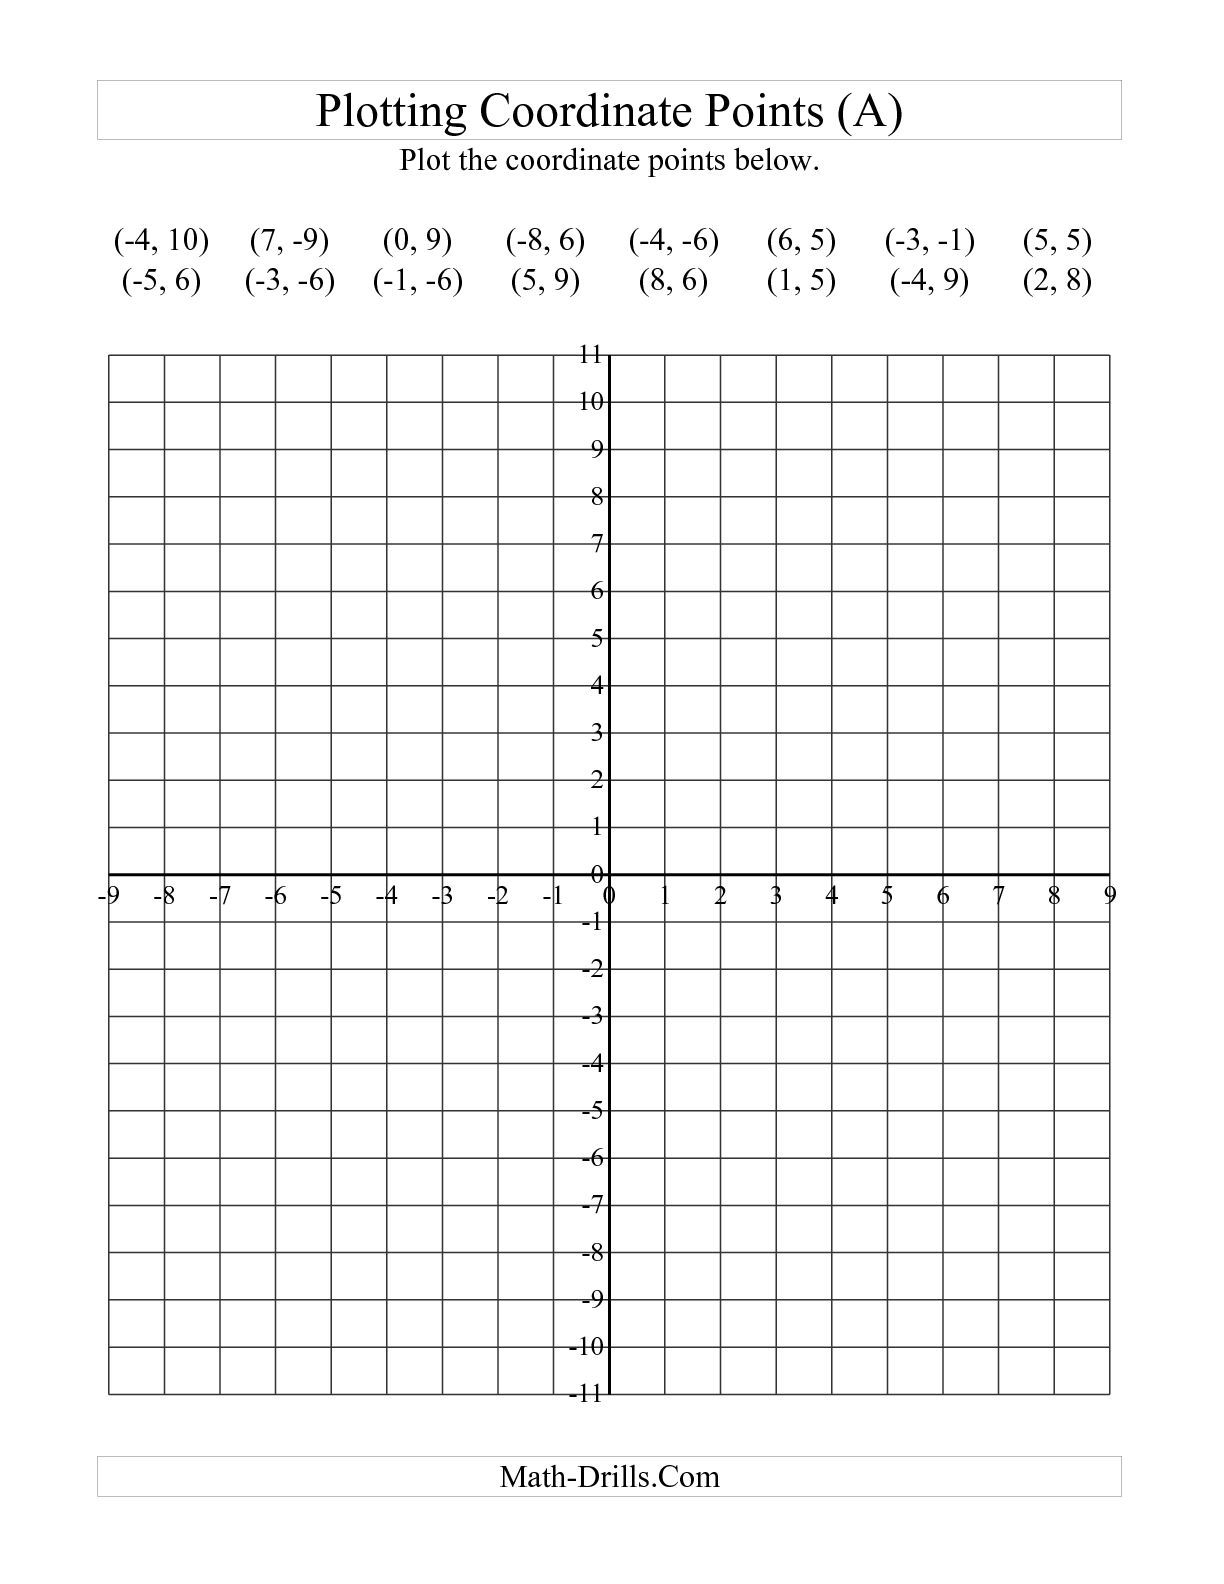 Worksheets Coordinate Plane Worksheets Middle School the plotting coordinate points all math worksheet from geometry worksheets page at math